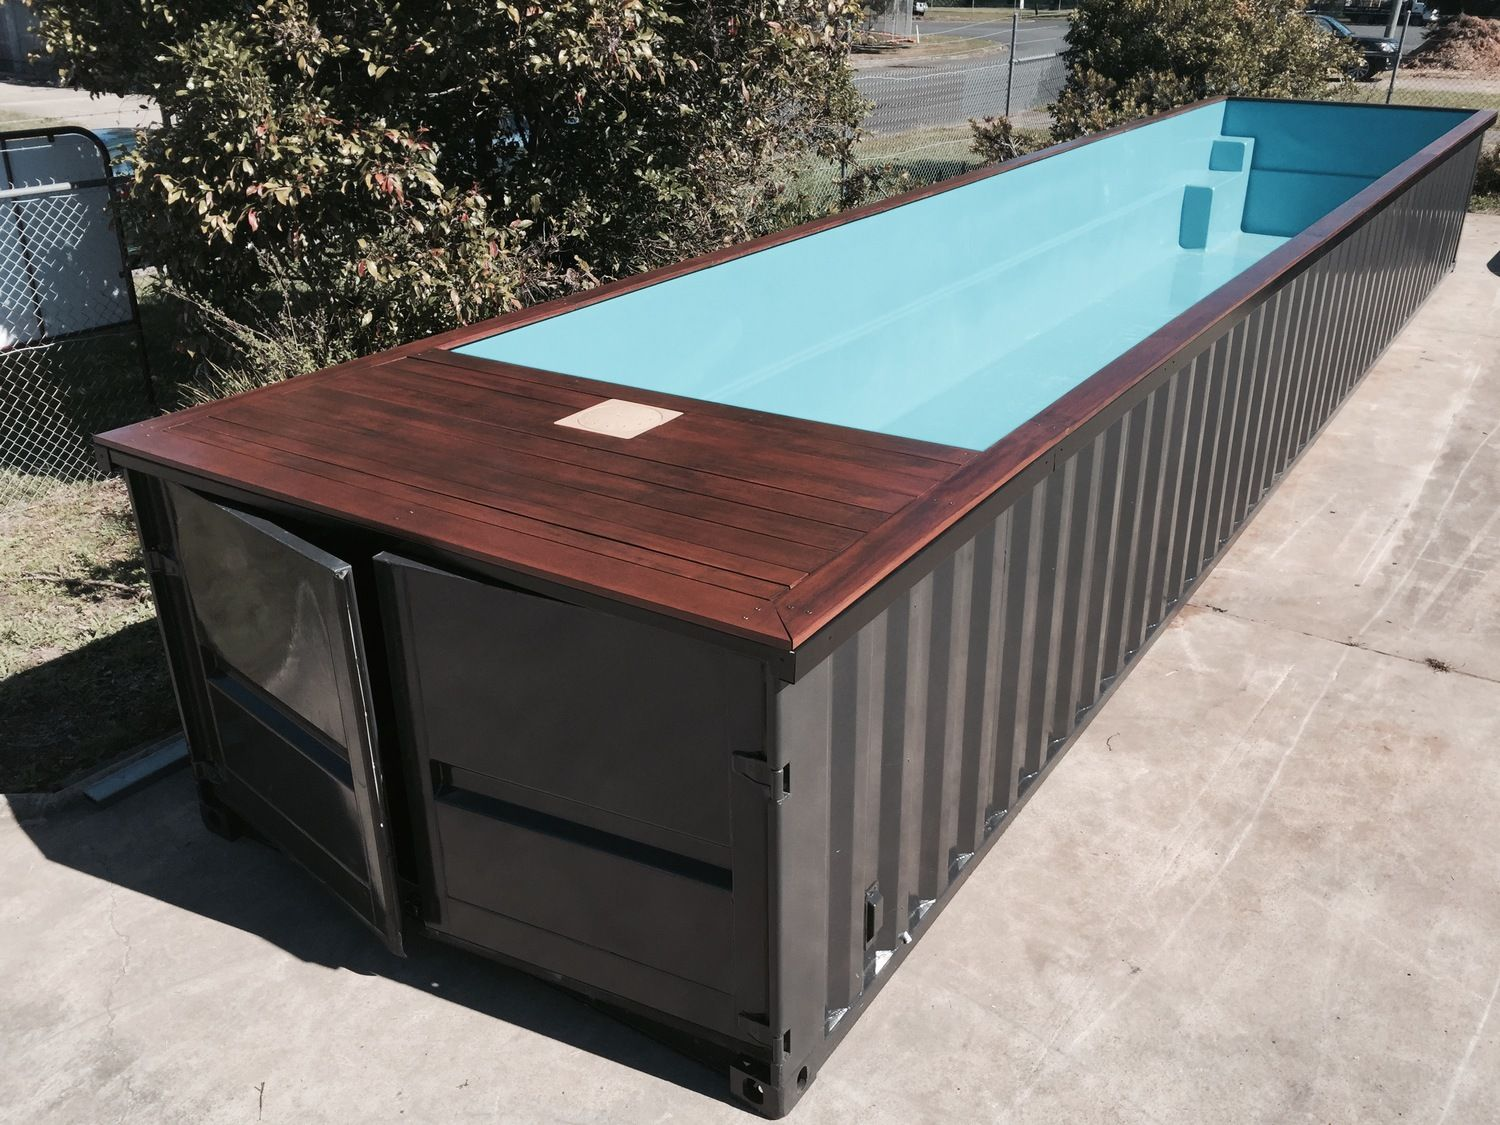 pin by al-zobaidy on khaled_board | pinterest | container pool